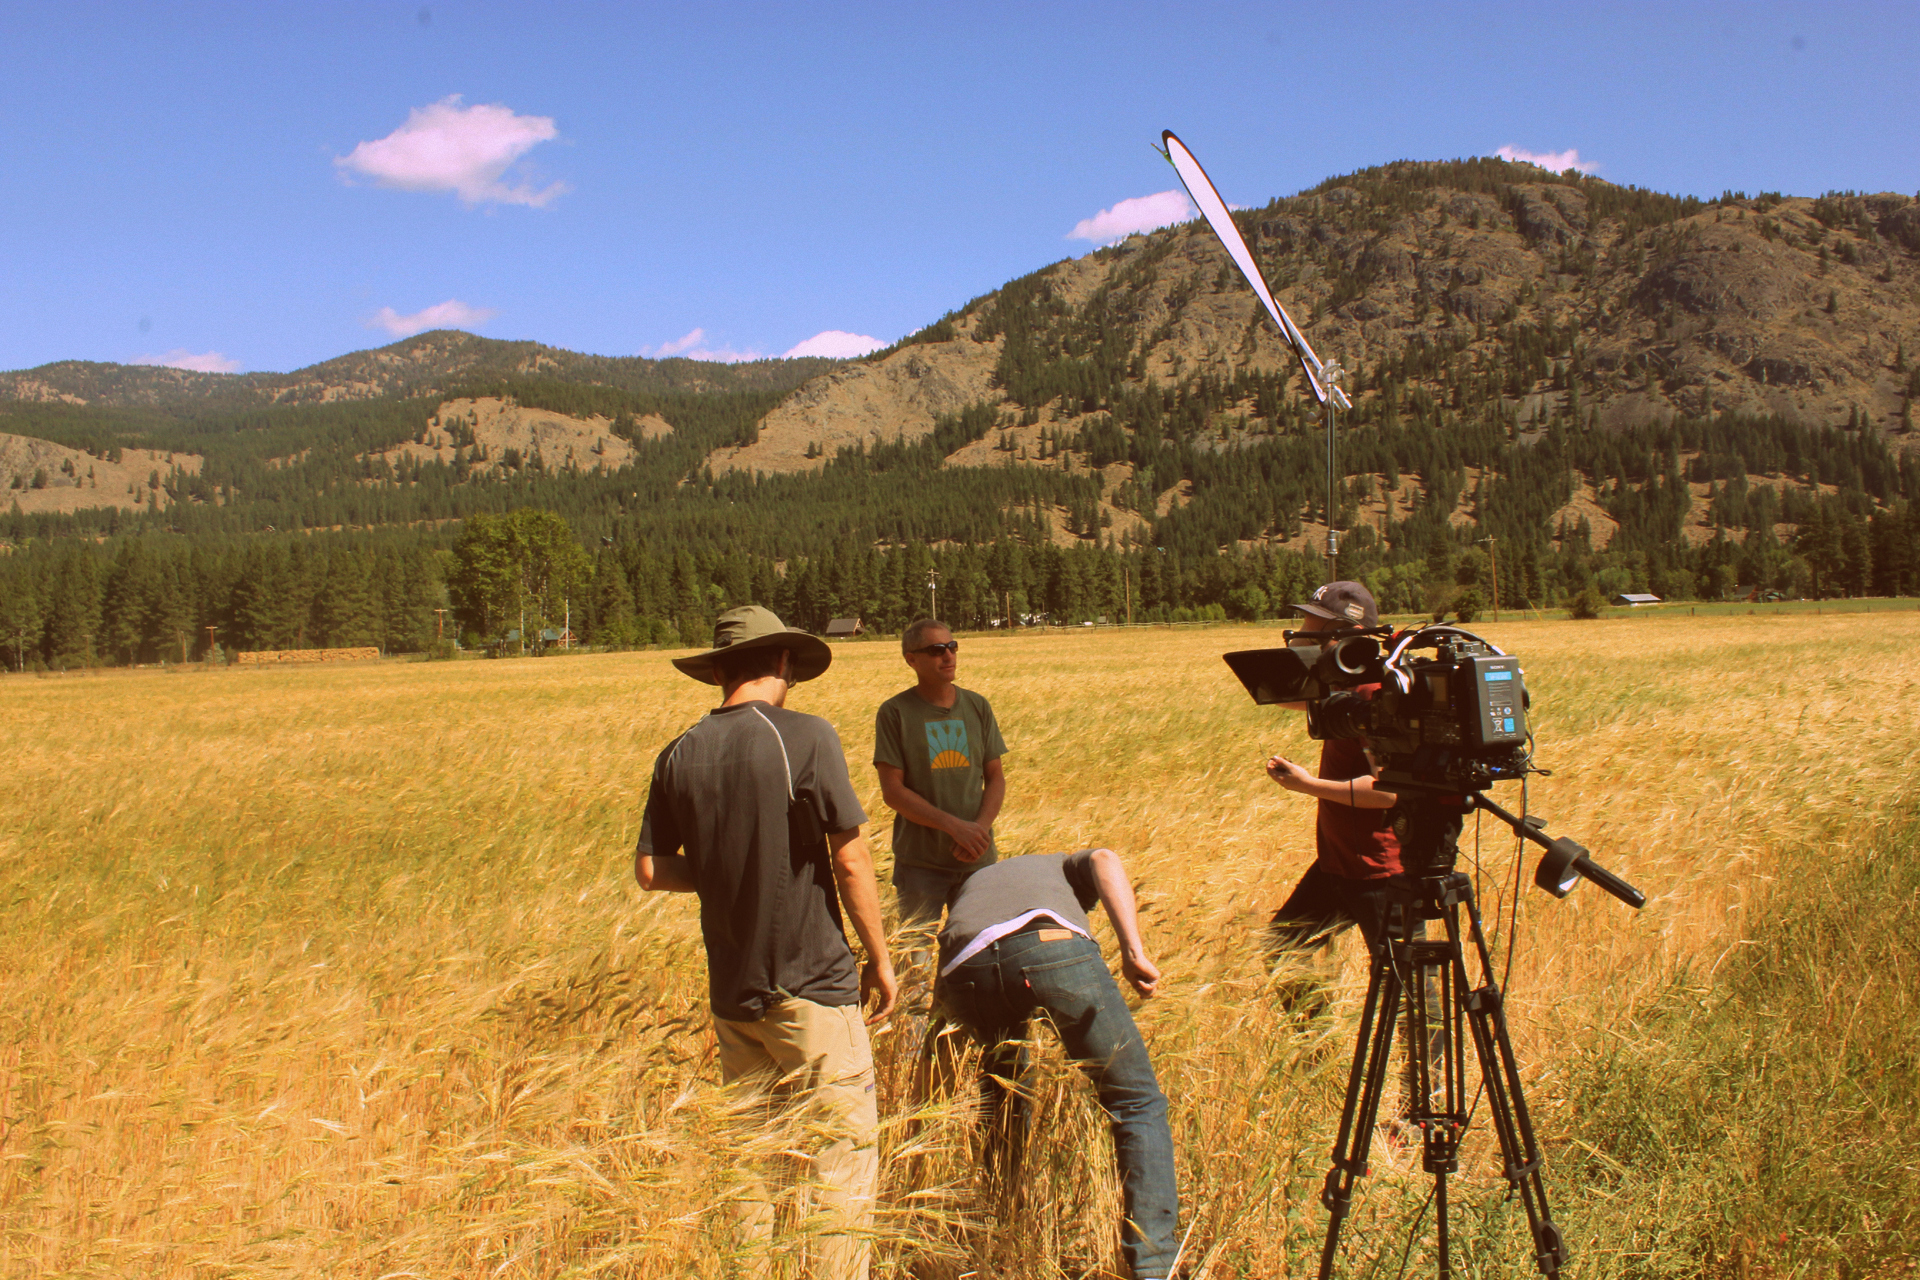 The Deconstructing Dinner television series crew prepares for an interview with Sam Lucy of Bluebird Grain Farms in Winthrop, Washington. Bluebird was featured as part of the Wheat episode for the Deconstructing Dinner television series.